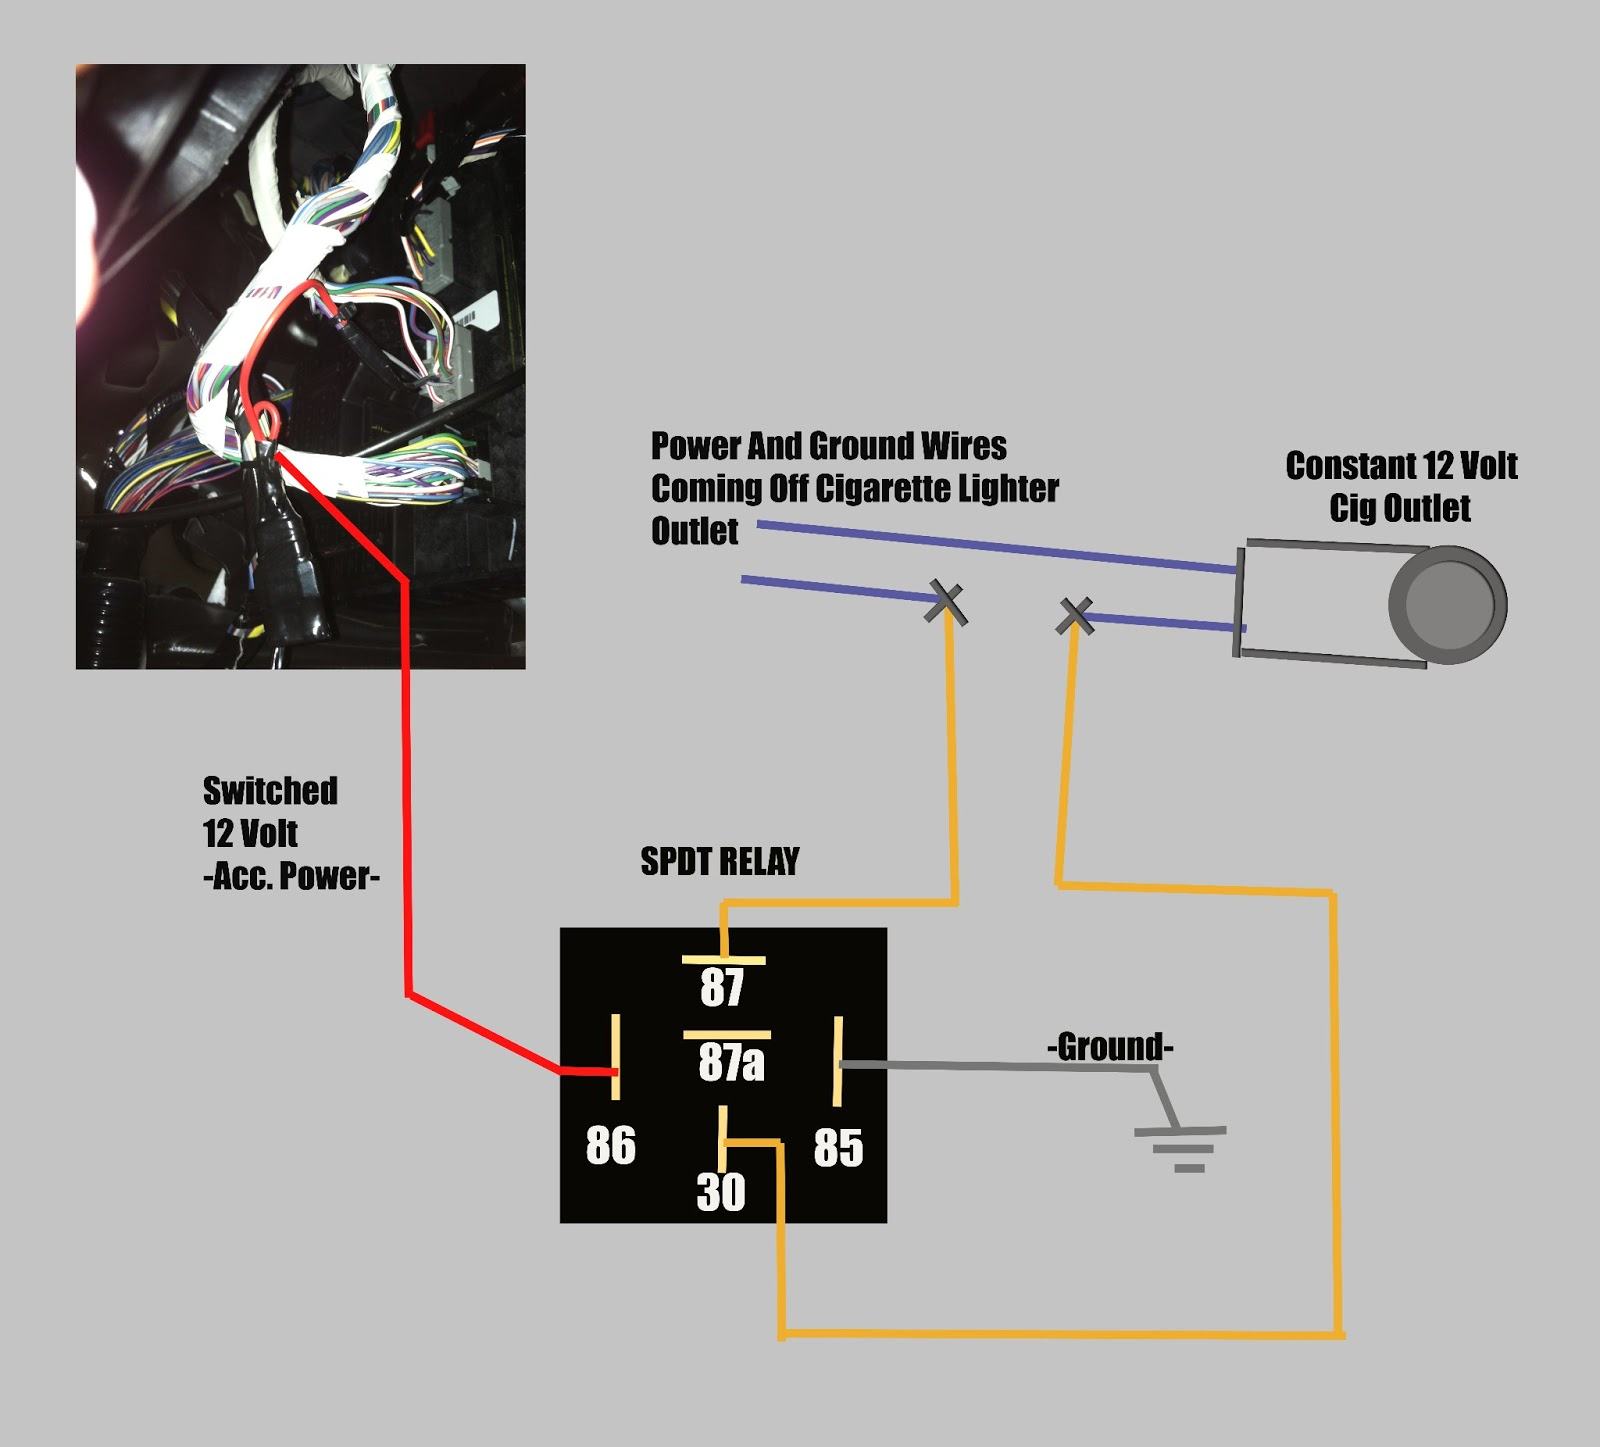 Casco 12v Power Schematic Wiring Library Diagram For Remote Starter Solenoid Car Audio Tips Tricks And How Tos Turn Cigarette Outlet From 12 Volt